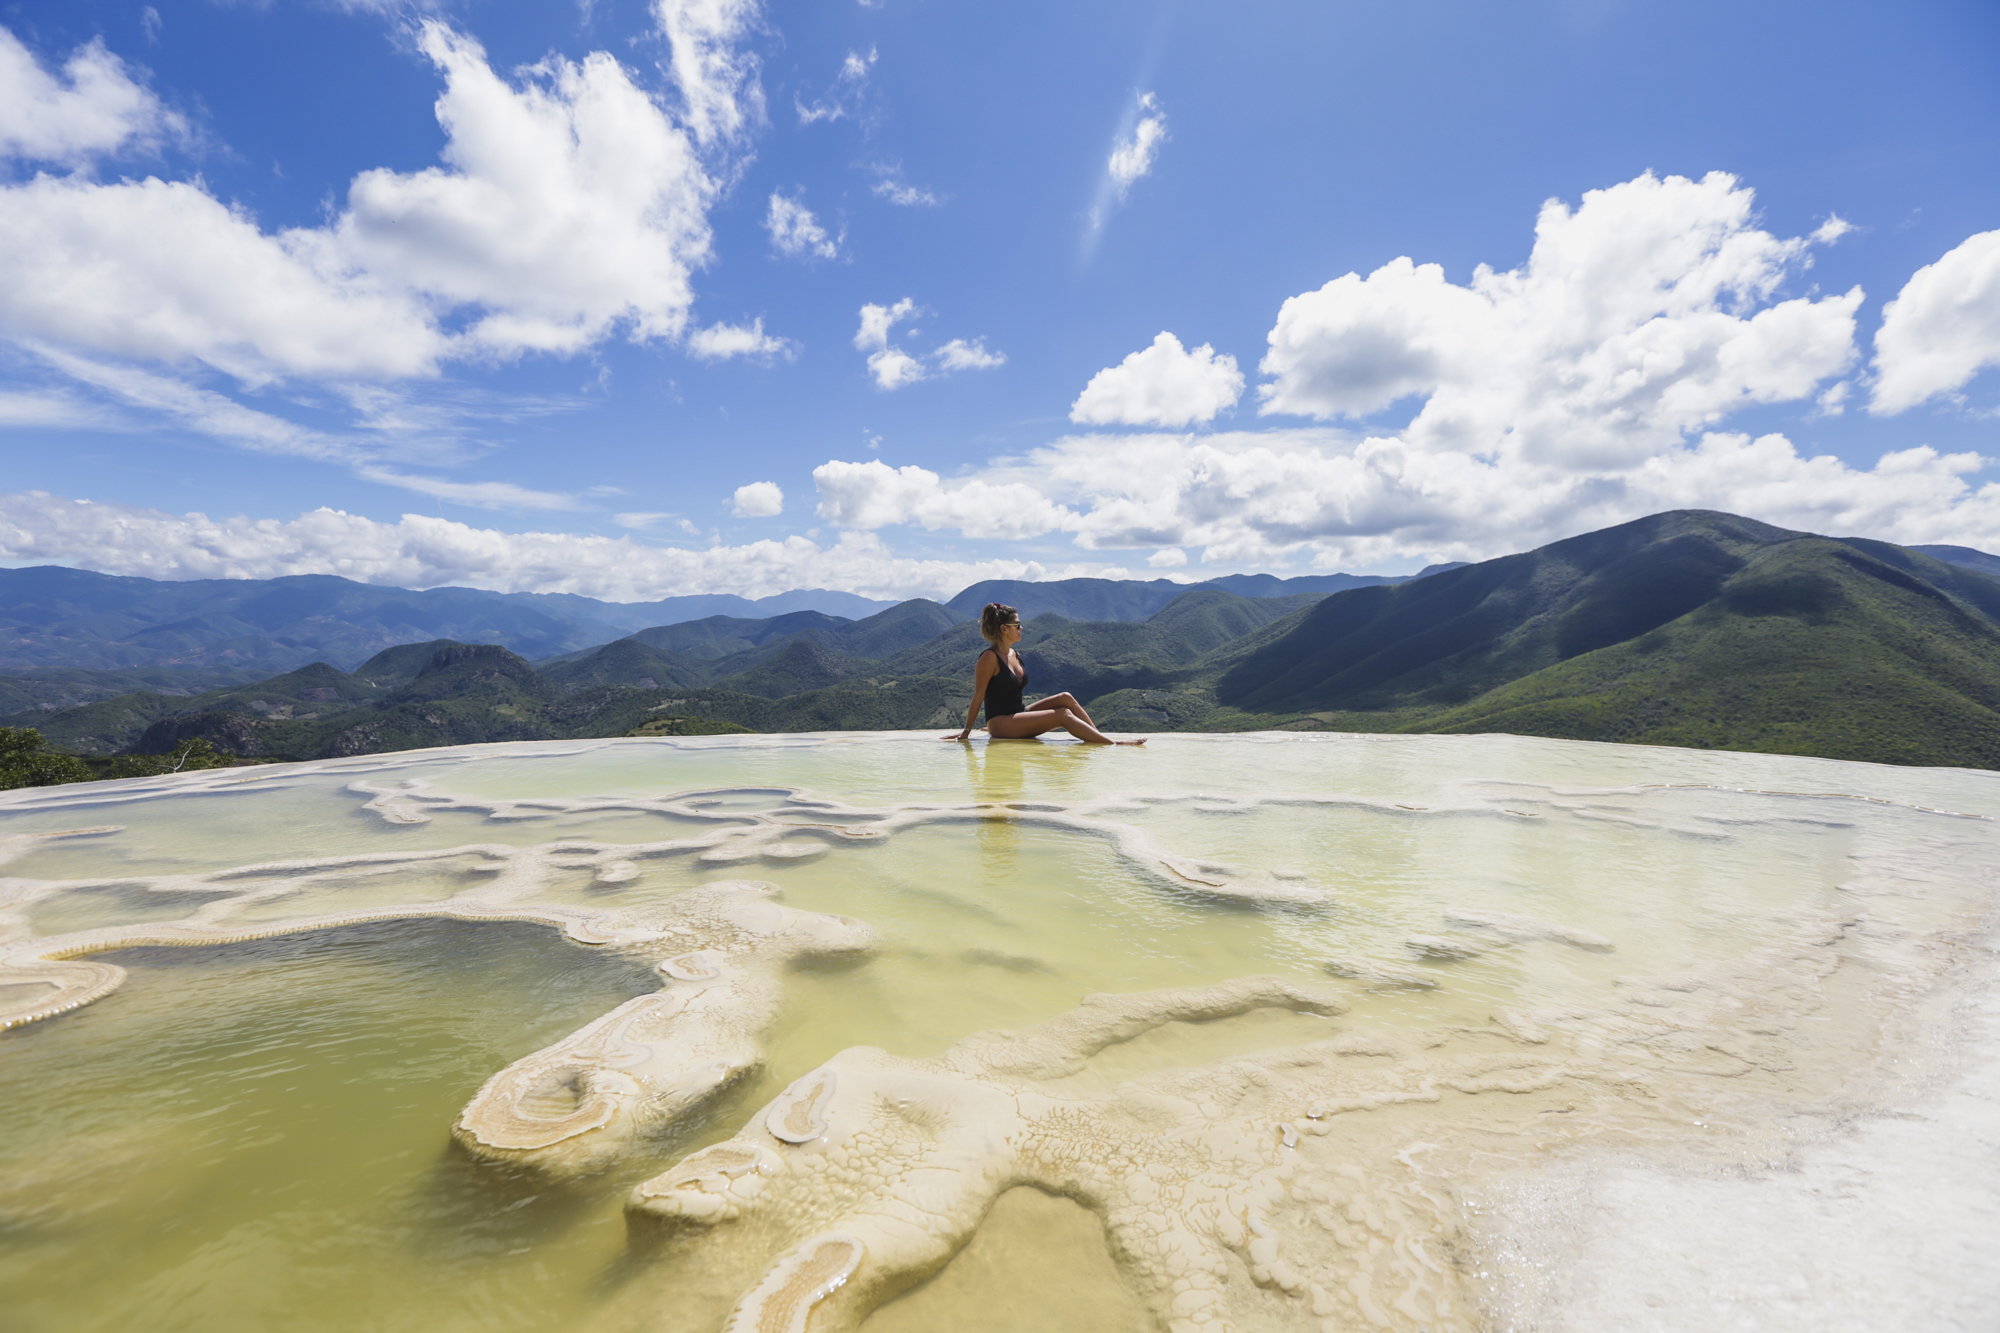 Victoria sits on the edge of Hierve el Agua, just outside of Oaxaca, Mexico, on October 30, 2018. Hierve el Agua is a set of natural rock formations in the that resemble cascades of water.These formations are created by fresh water springs, whose water is over-saturated with calcium carbonate and other minerals.